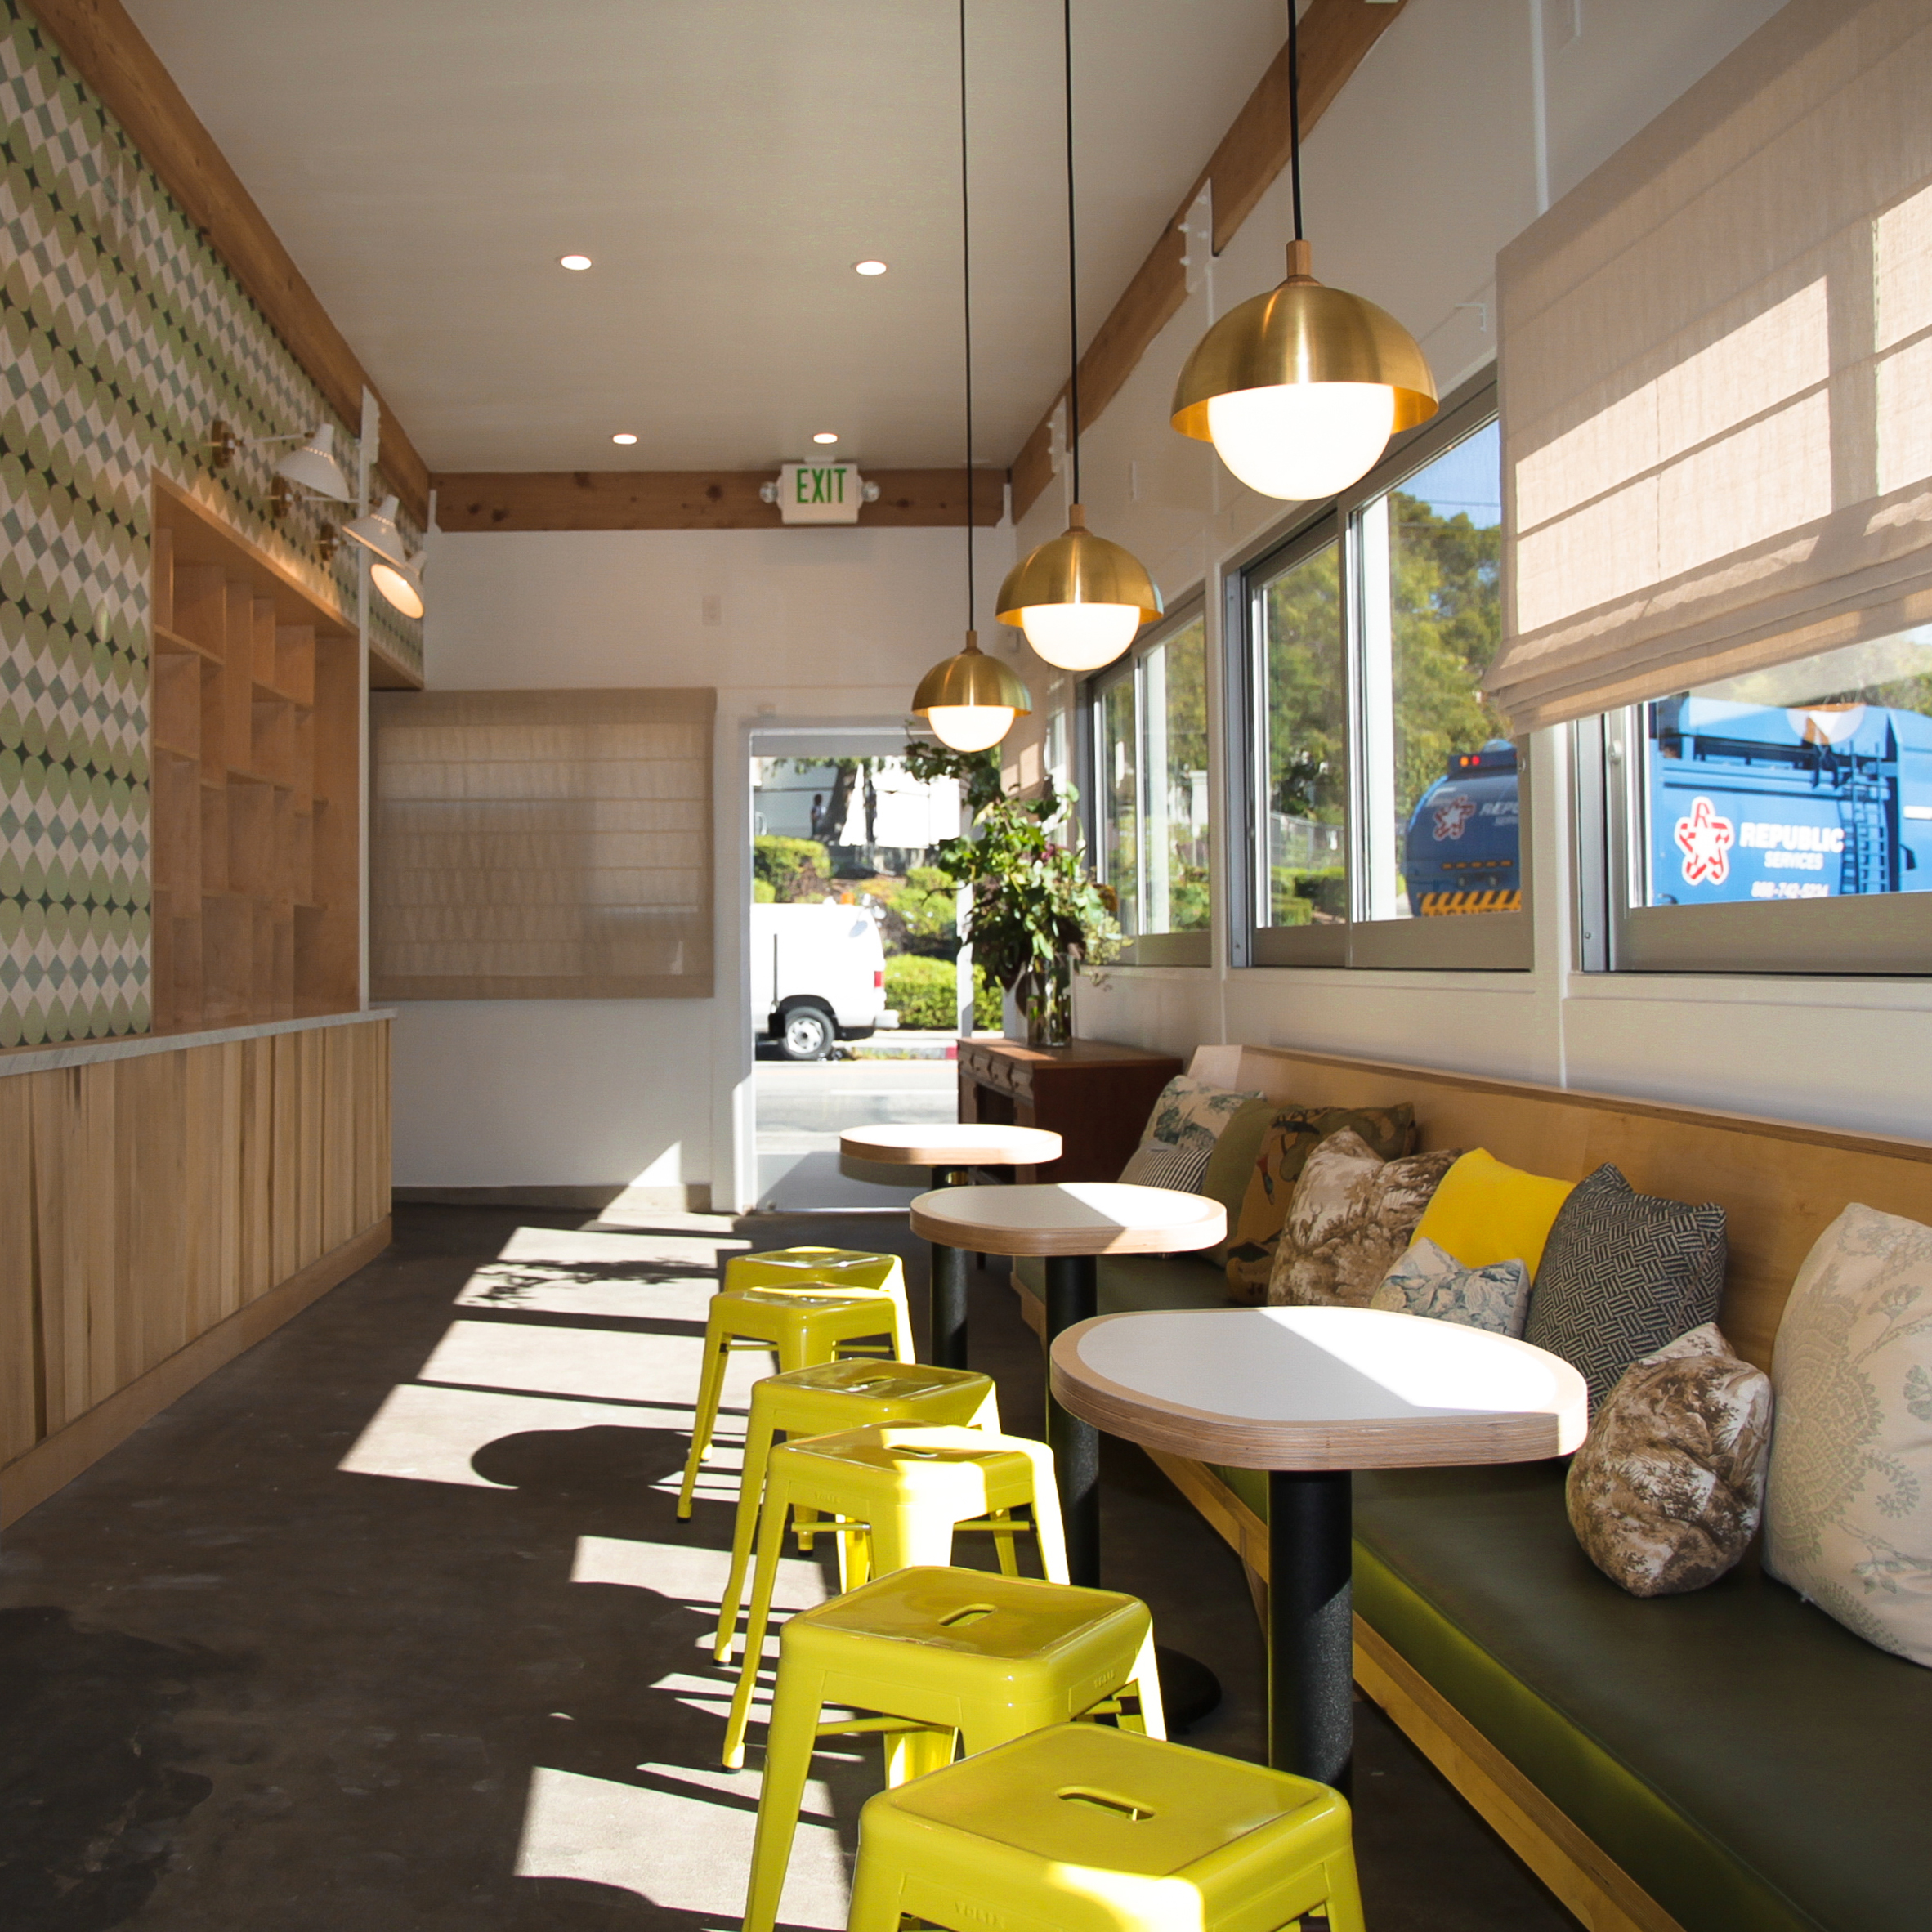 Mobys Little Pine vegan cafe features modernisminfluenced interior